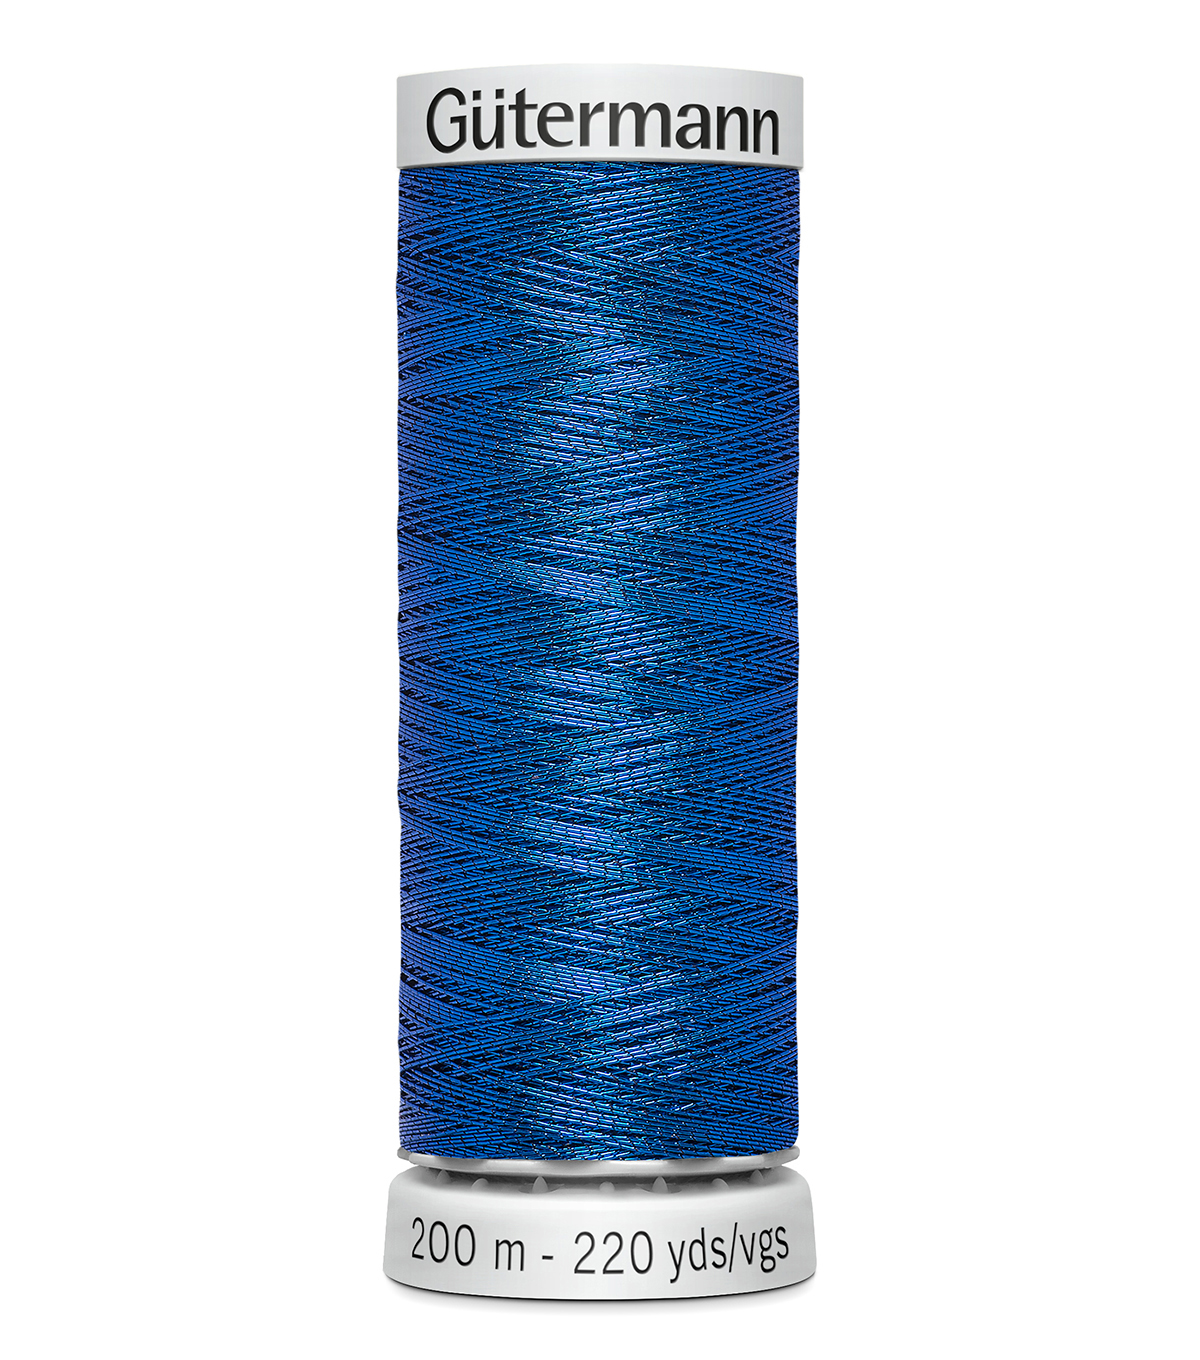 Gutermann 200M Dekor Thread, 200m Dekor Metallic-royal Blue